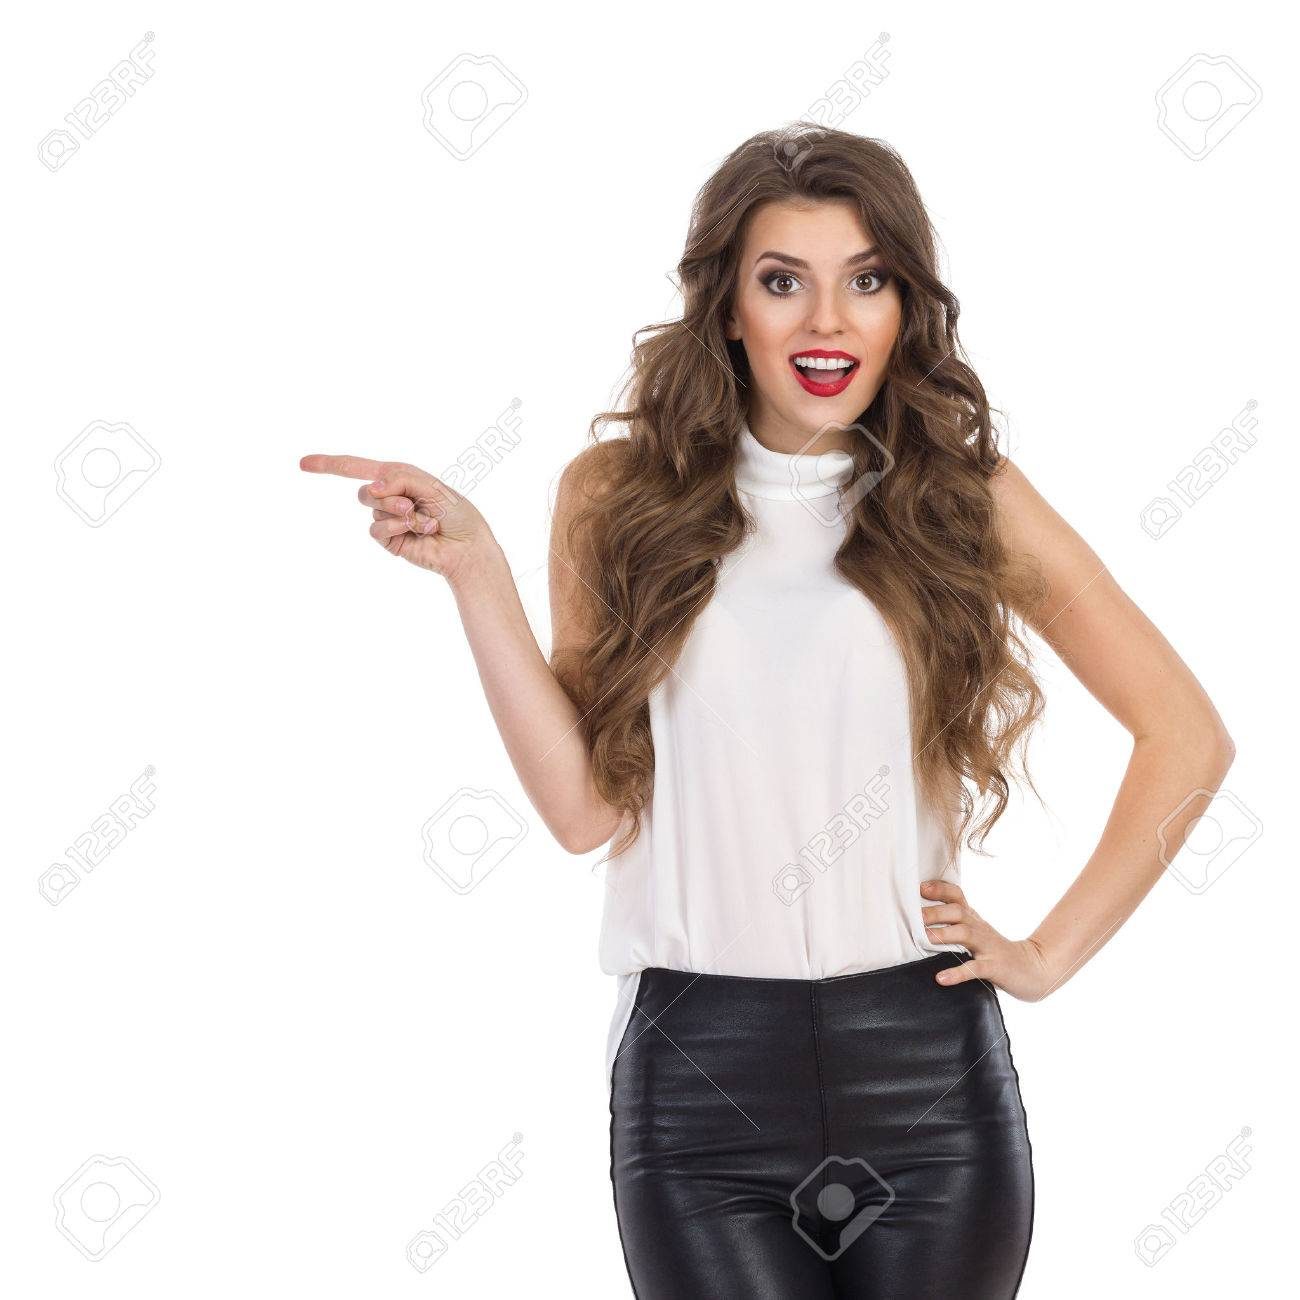 Lederhose Frau Stock Photo